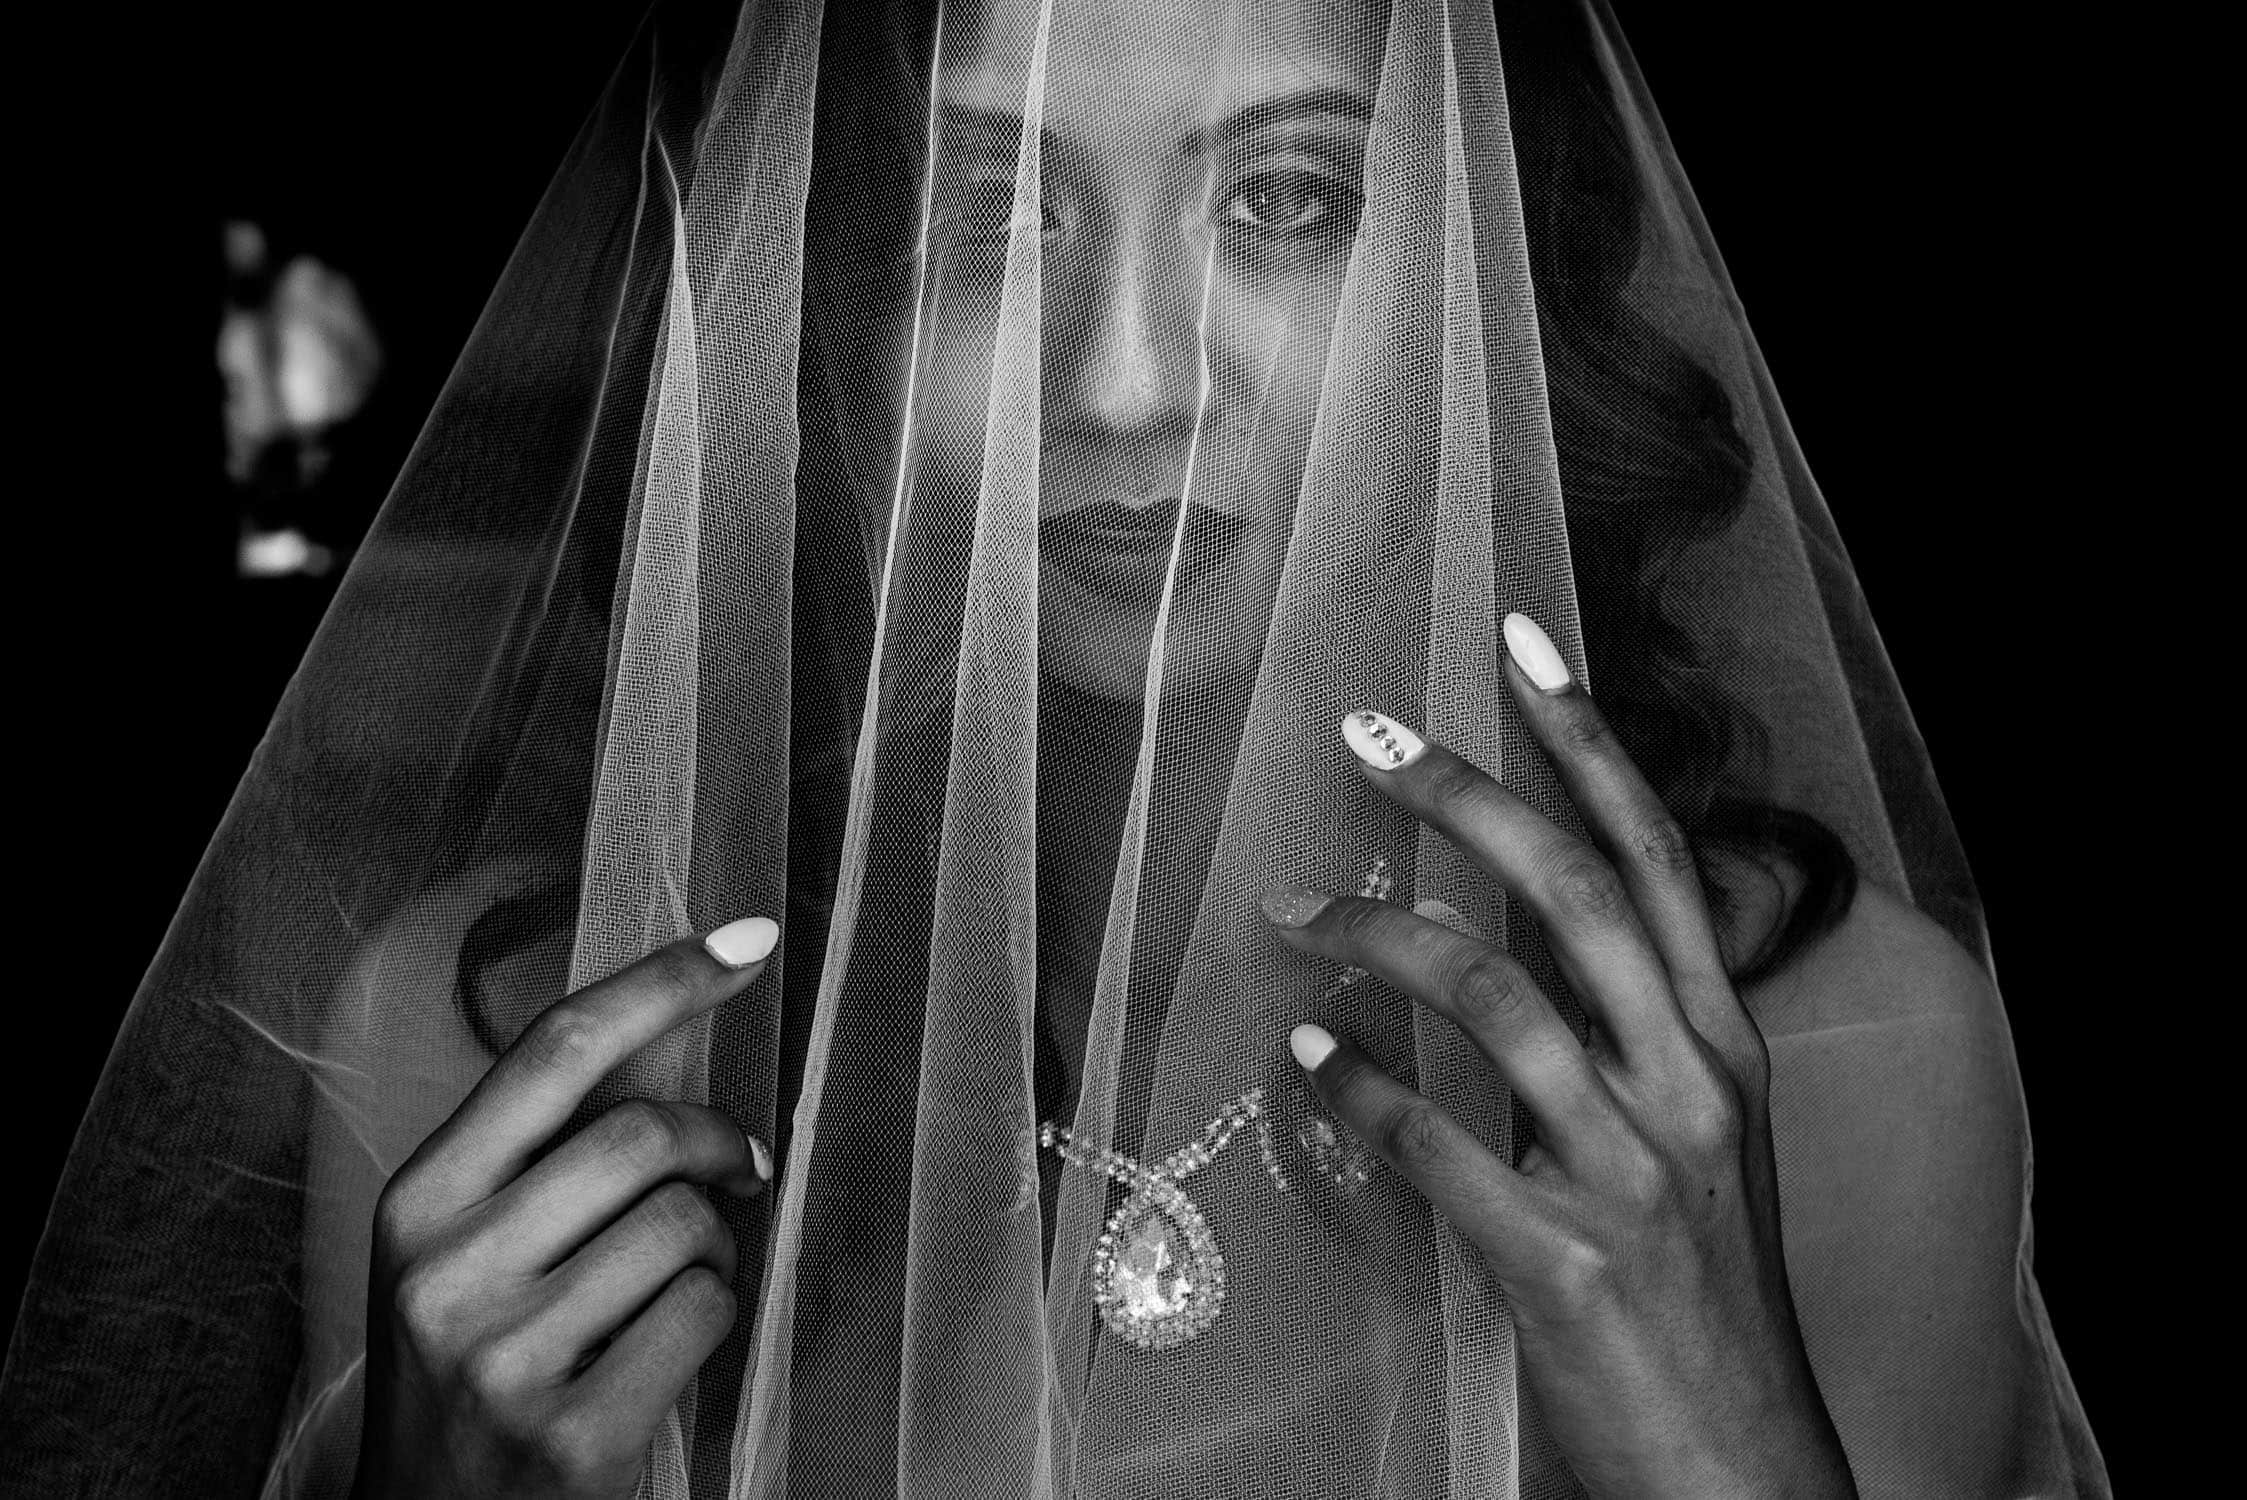 Bride holding veil black & white wedding photography